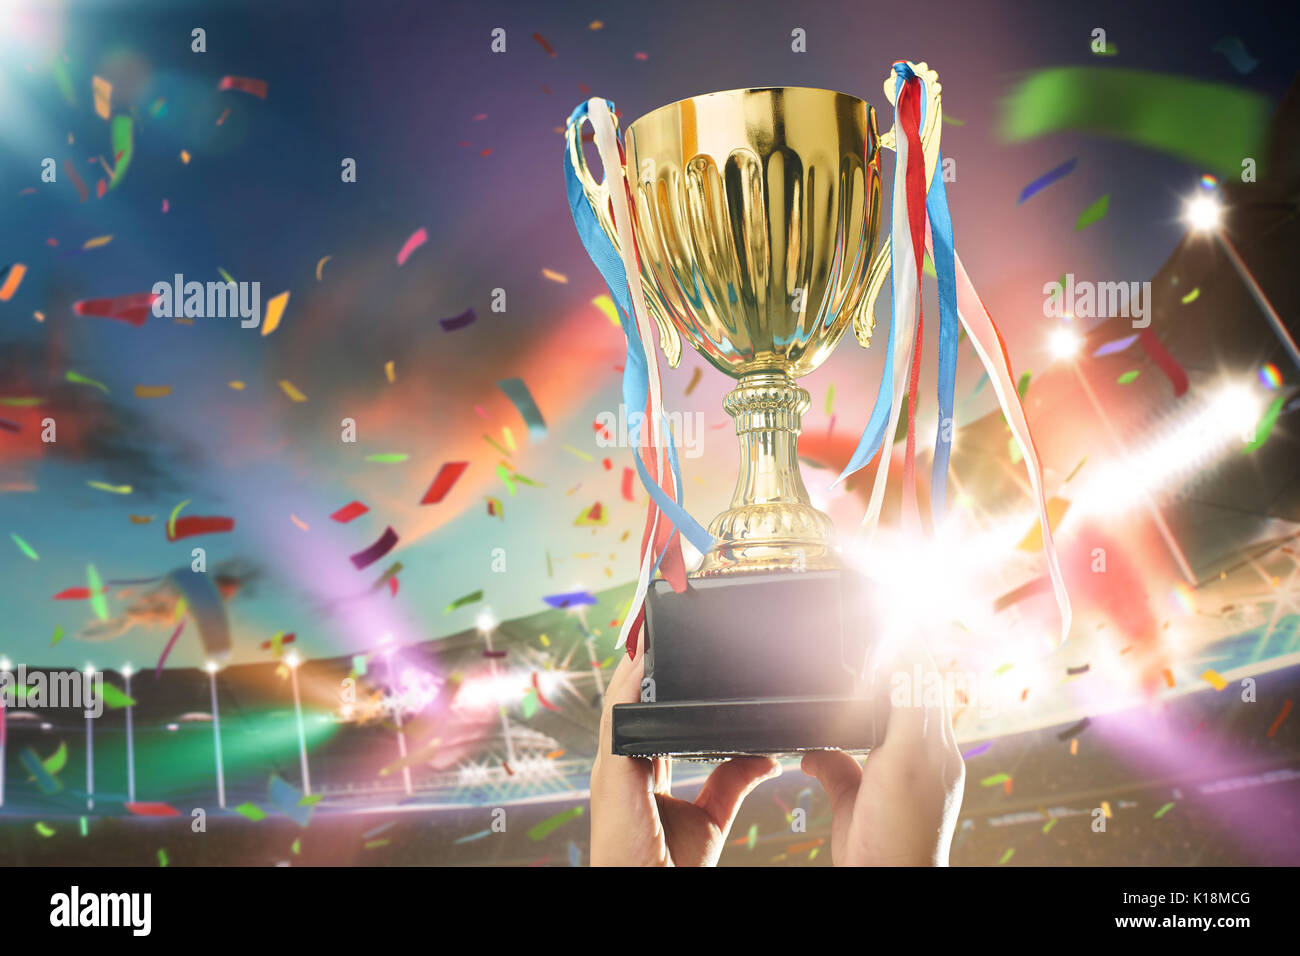 Young athlete holding up a gold trophy cup with space ready for your trophy design. Grand stadium celebration with spotlight , flare and confetti .. - Stock Image